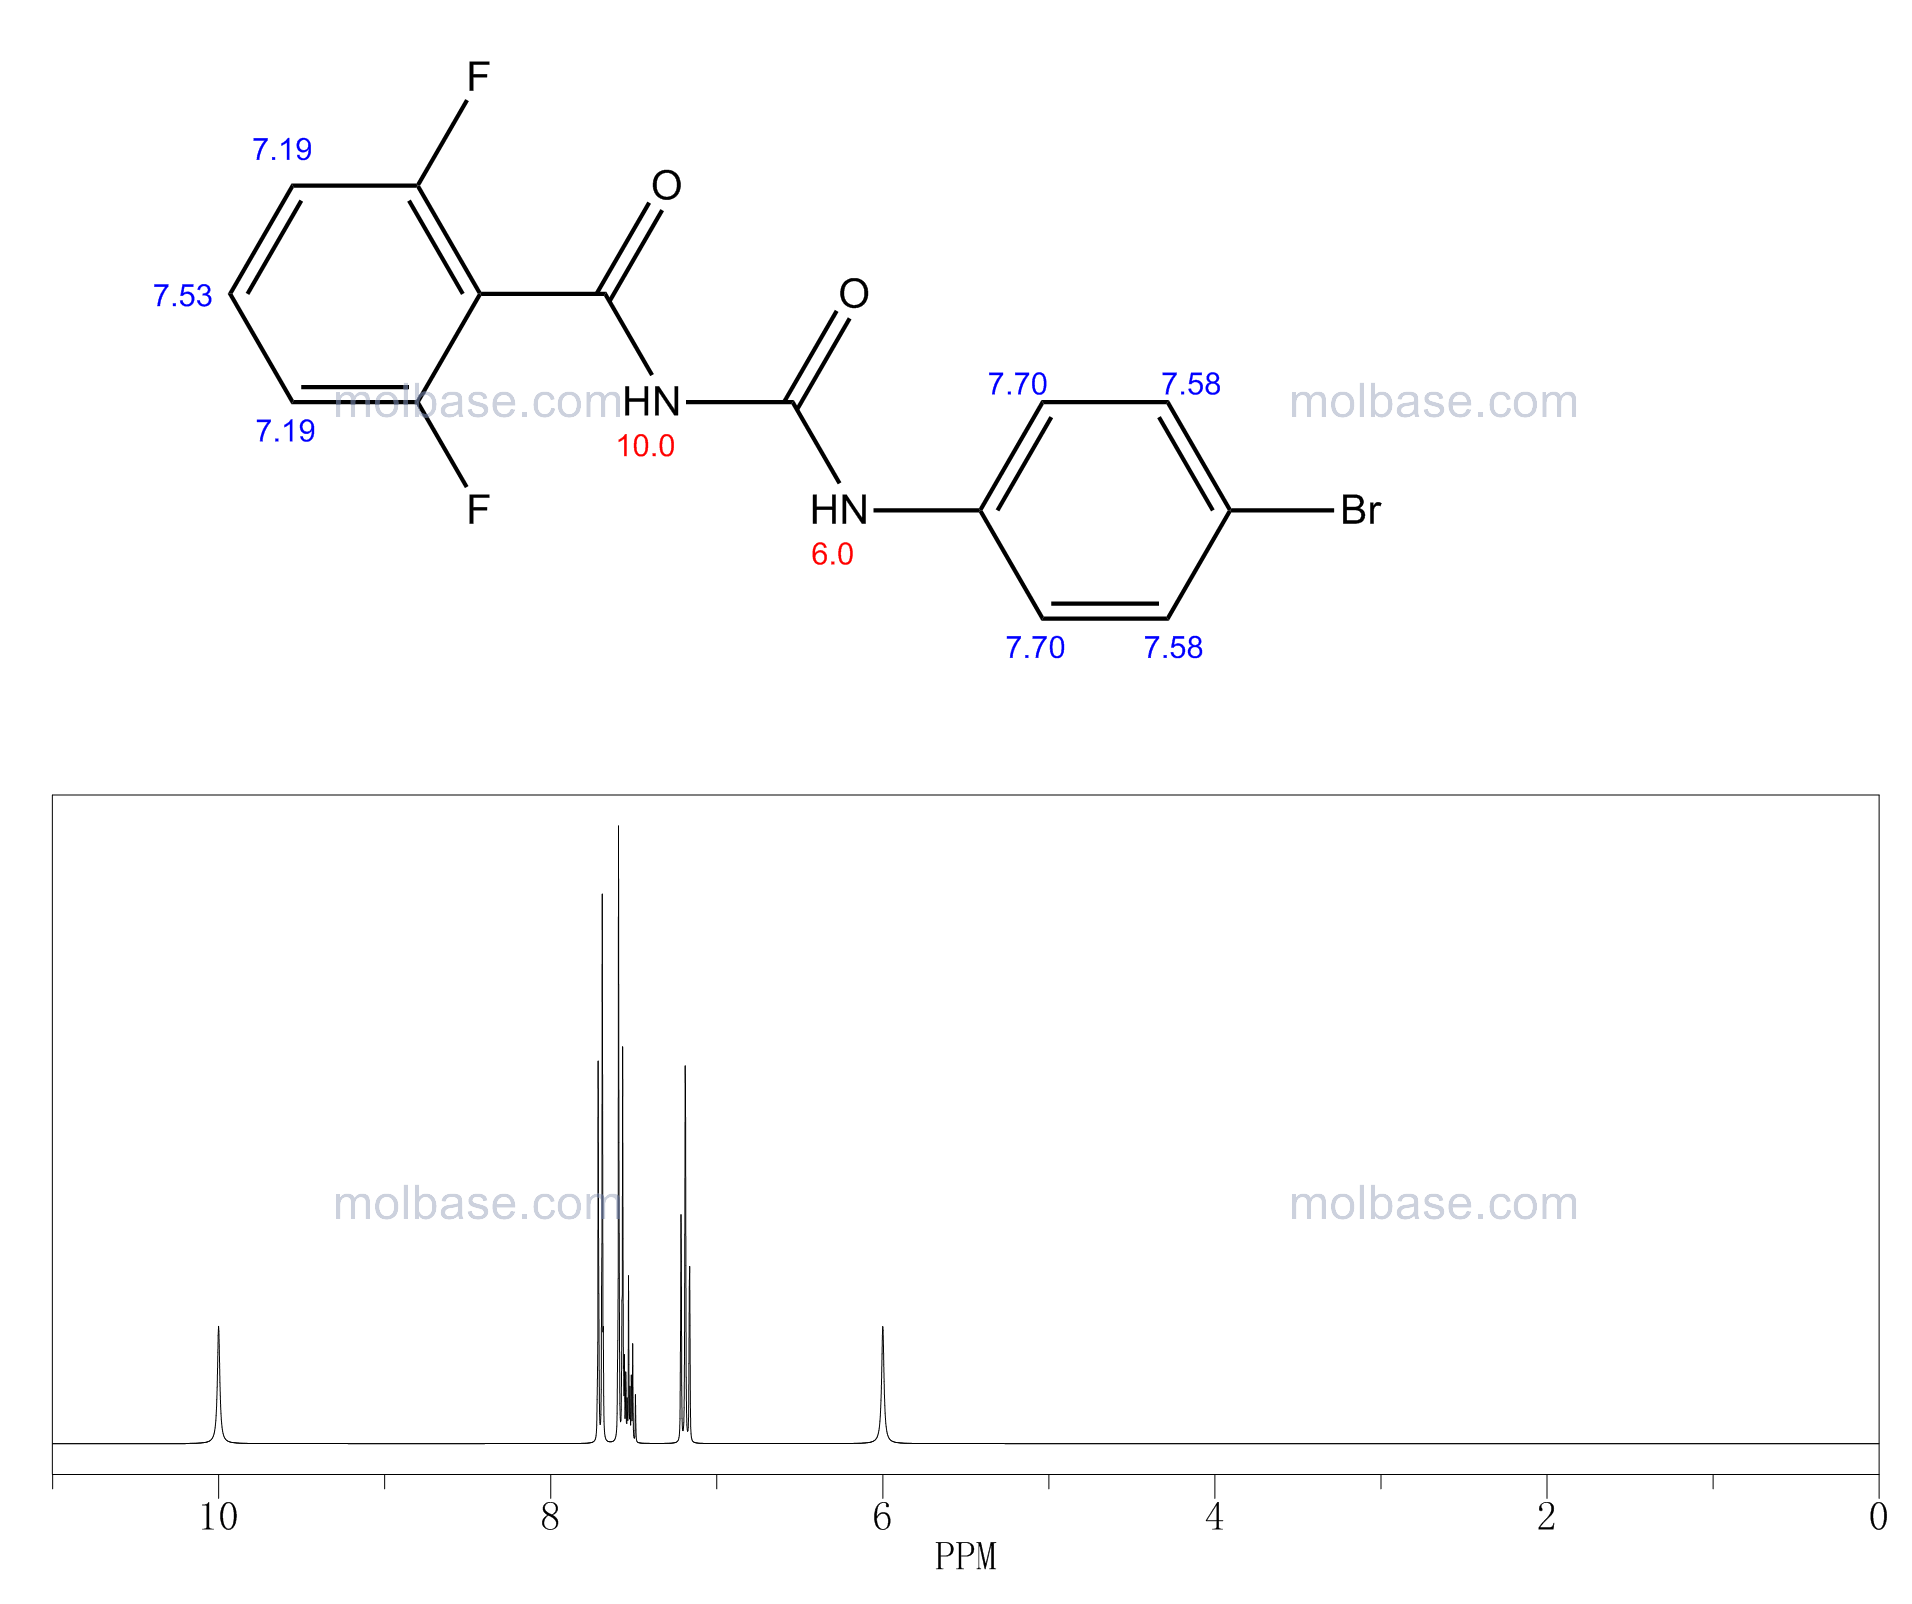 N-[(4-bromophenyl)carbamoyl]-2,6-difluorobenzamide NMR spectra analysis, Chemical CAS NO. 35367-39-6 NMR spectral analysis, N-[(4-bromophenyl)carbamoyl]-2,6-difluorobenzamide C-NMR spectrum